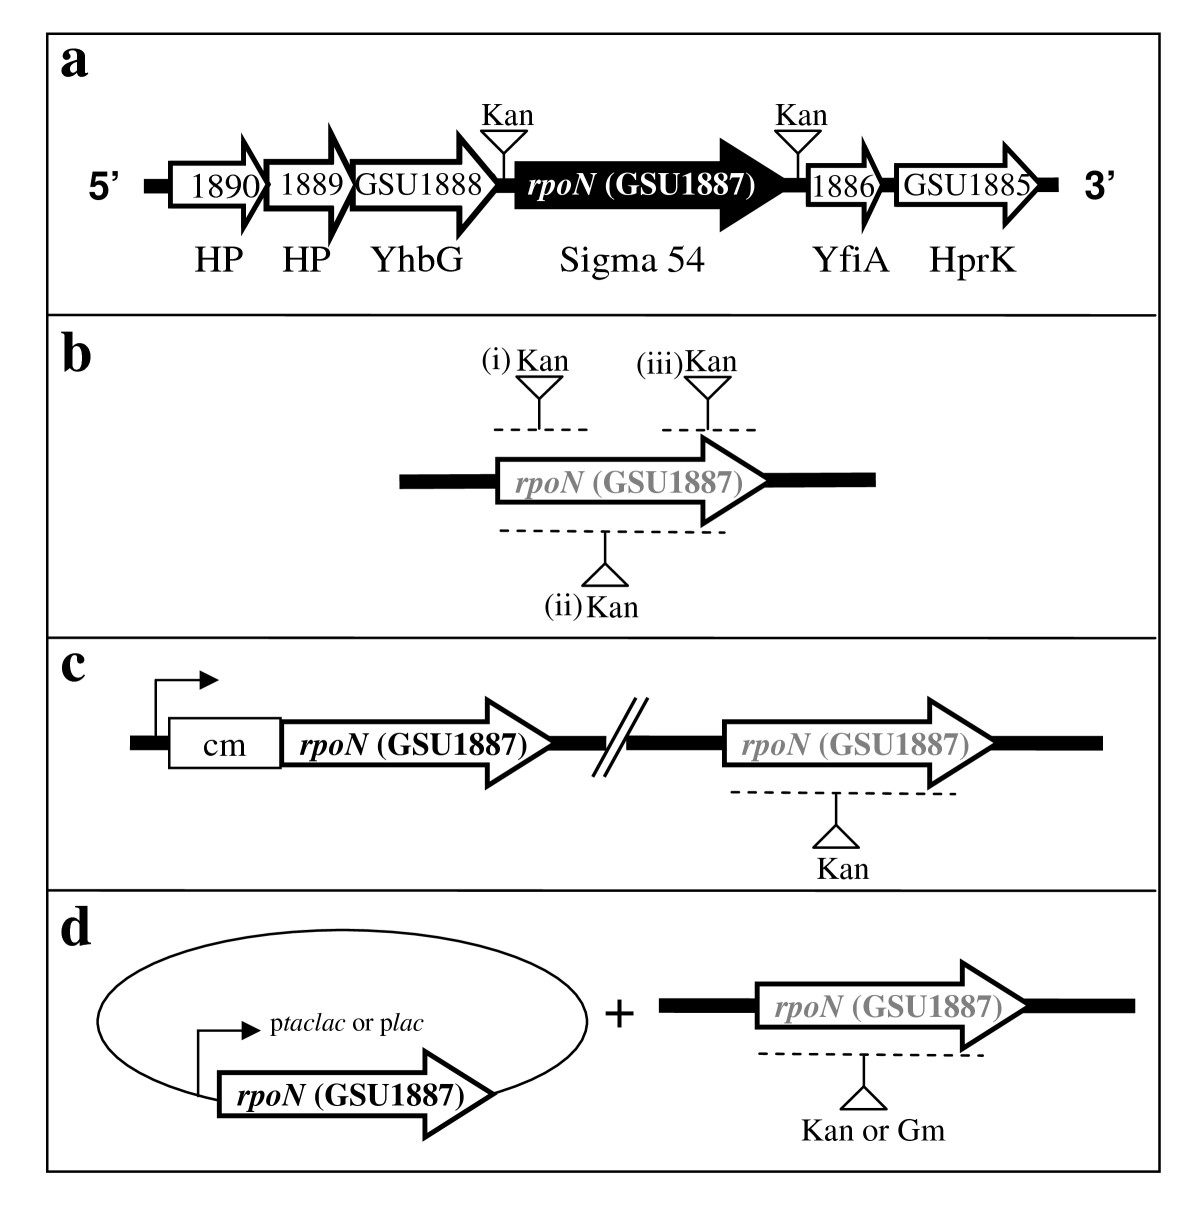 http://static-content.springer.com/image/art%3A10.1186%2F1471-2164-10-331/MediaObjects/12864_2009_Article_2215_Fig1_HTML.jpg